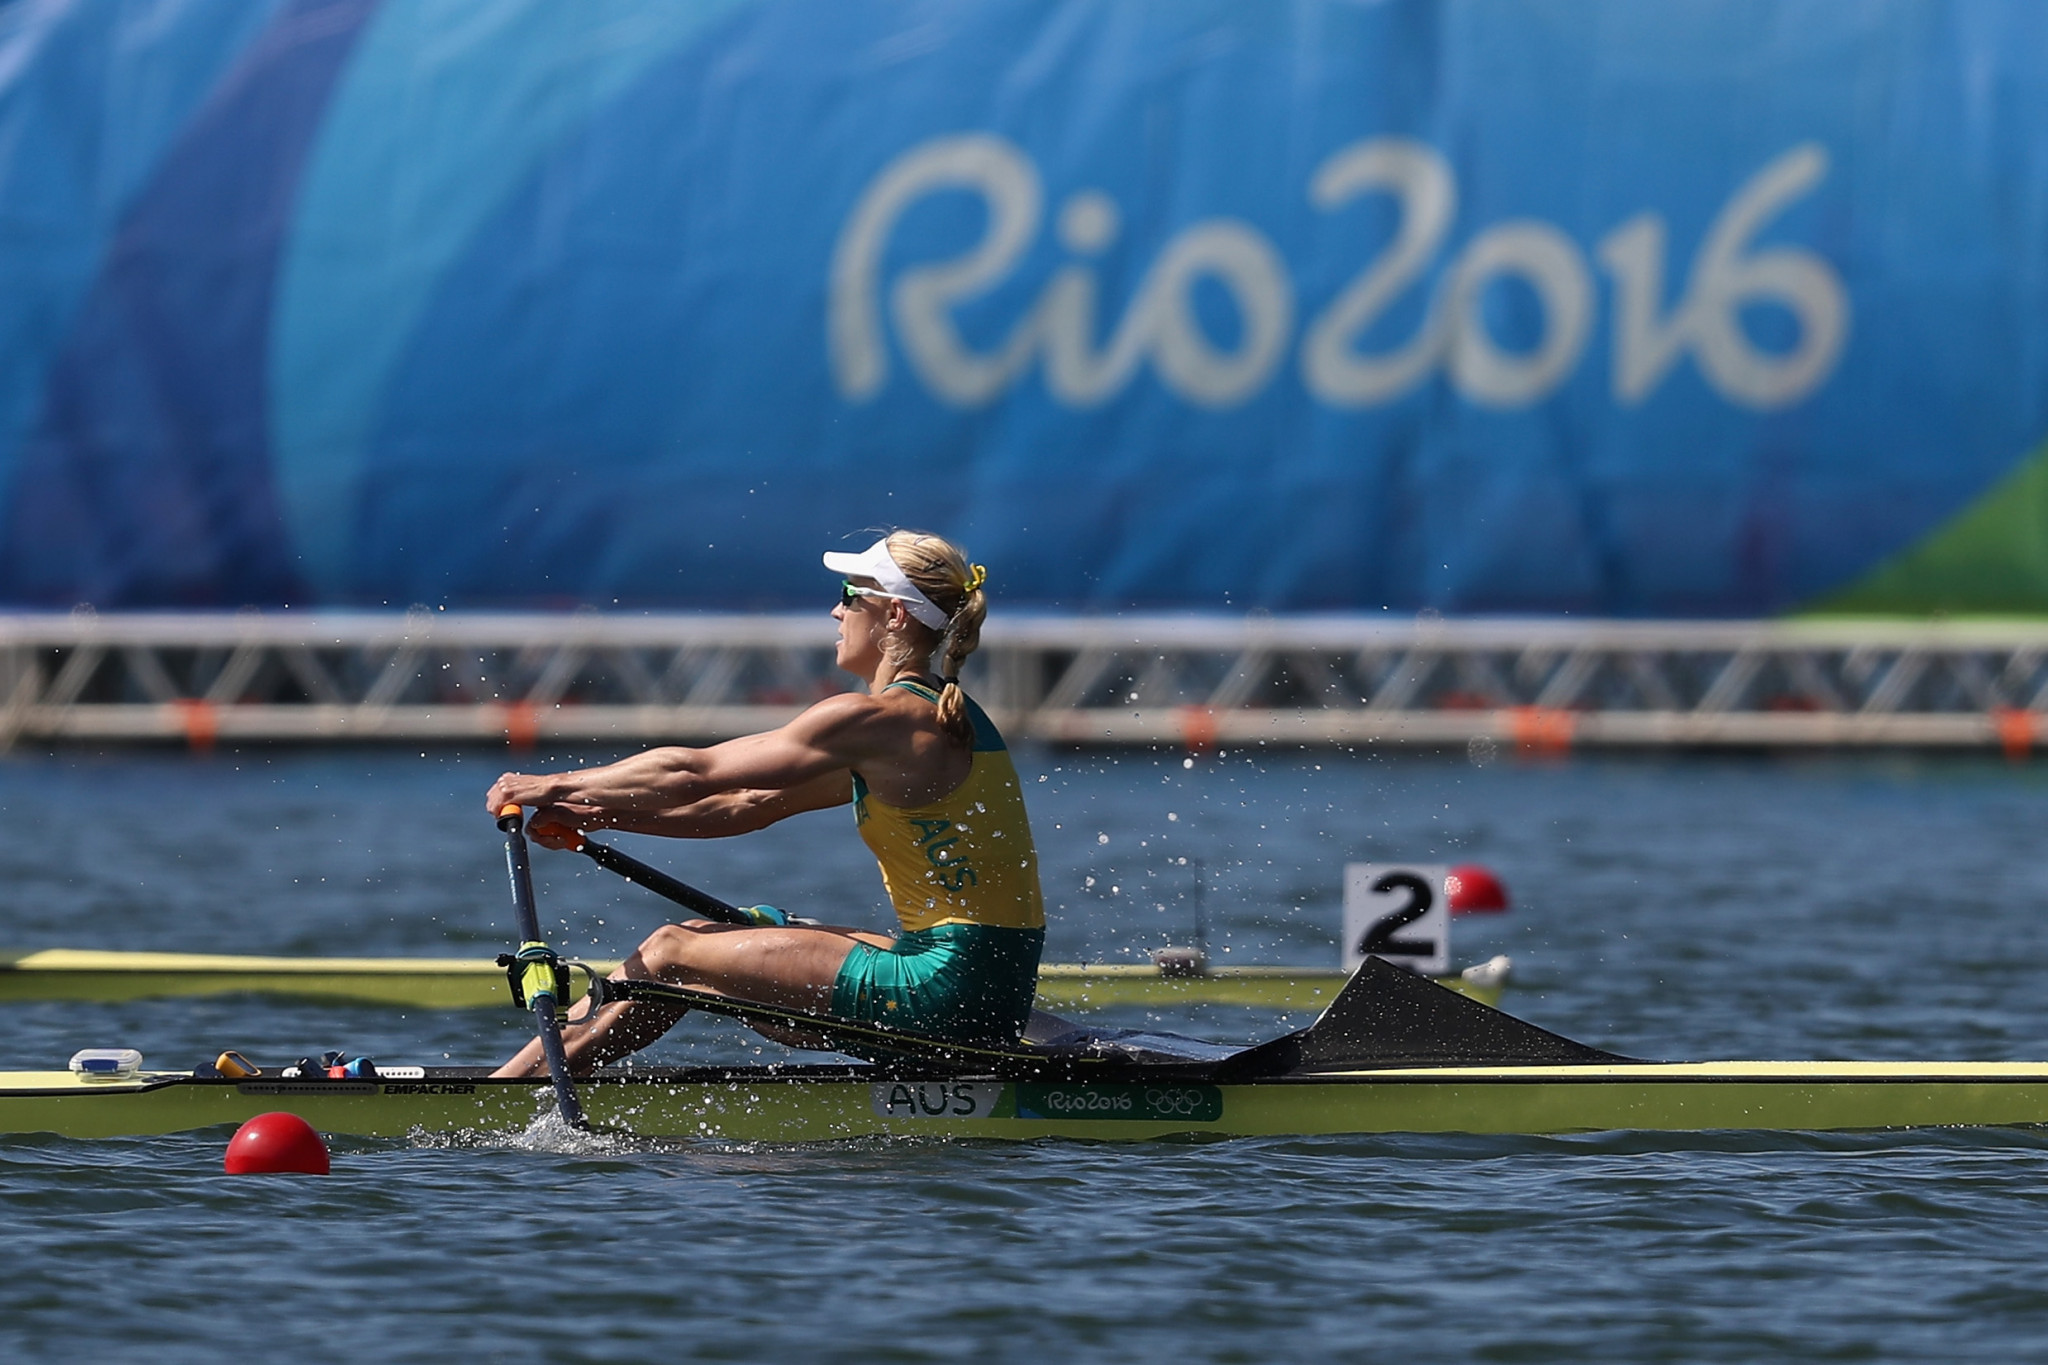 Rower Kim Brennan won an Olympic gold medal in the single sculls at Rio 2016 but at Tokyo 2020 will be one of Australia's Deputy Chef de Missions ©Getty Images